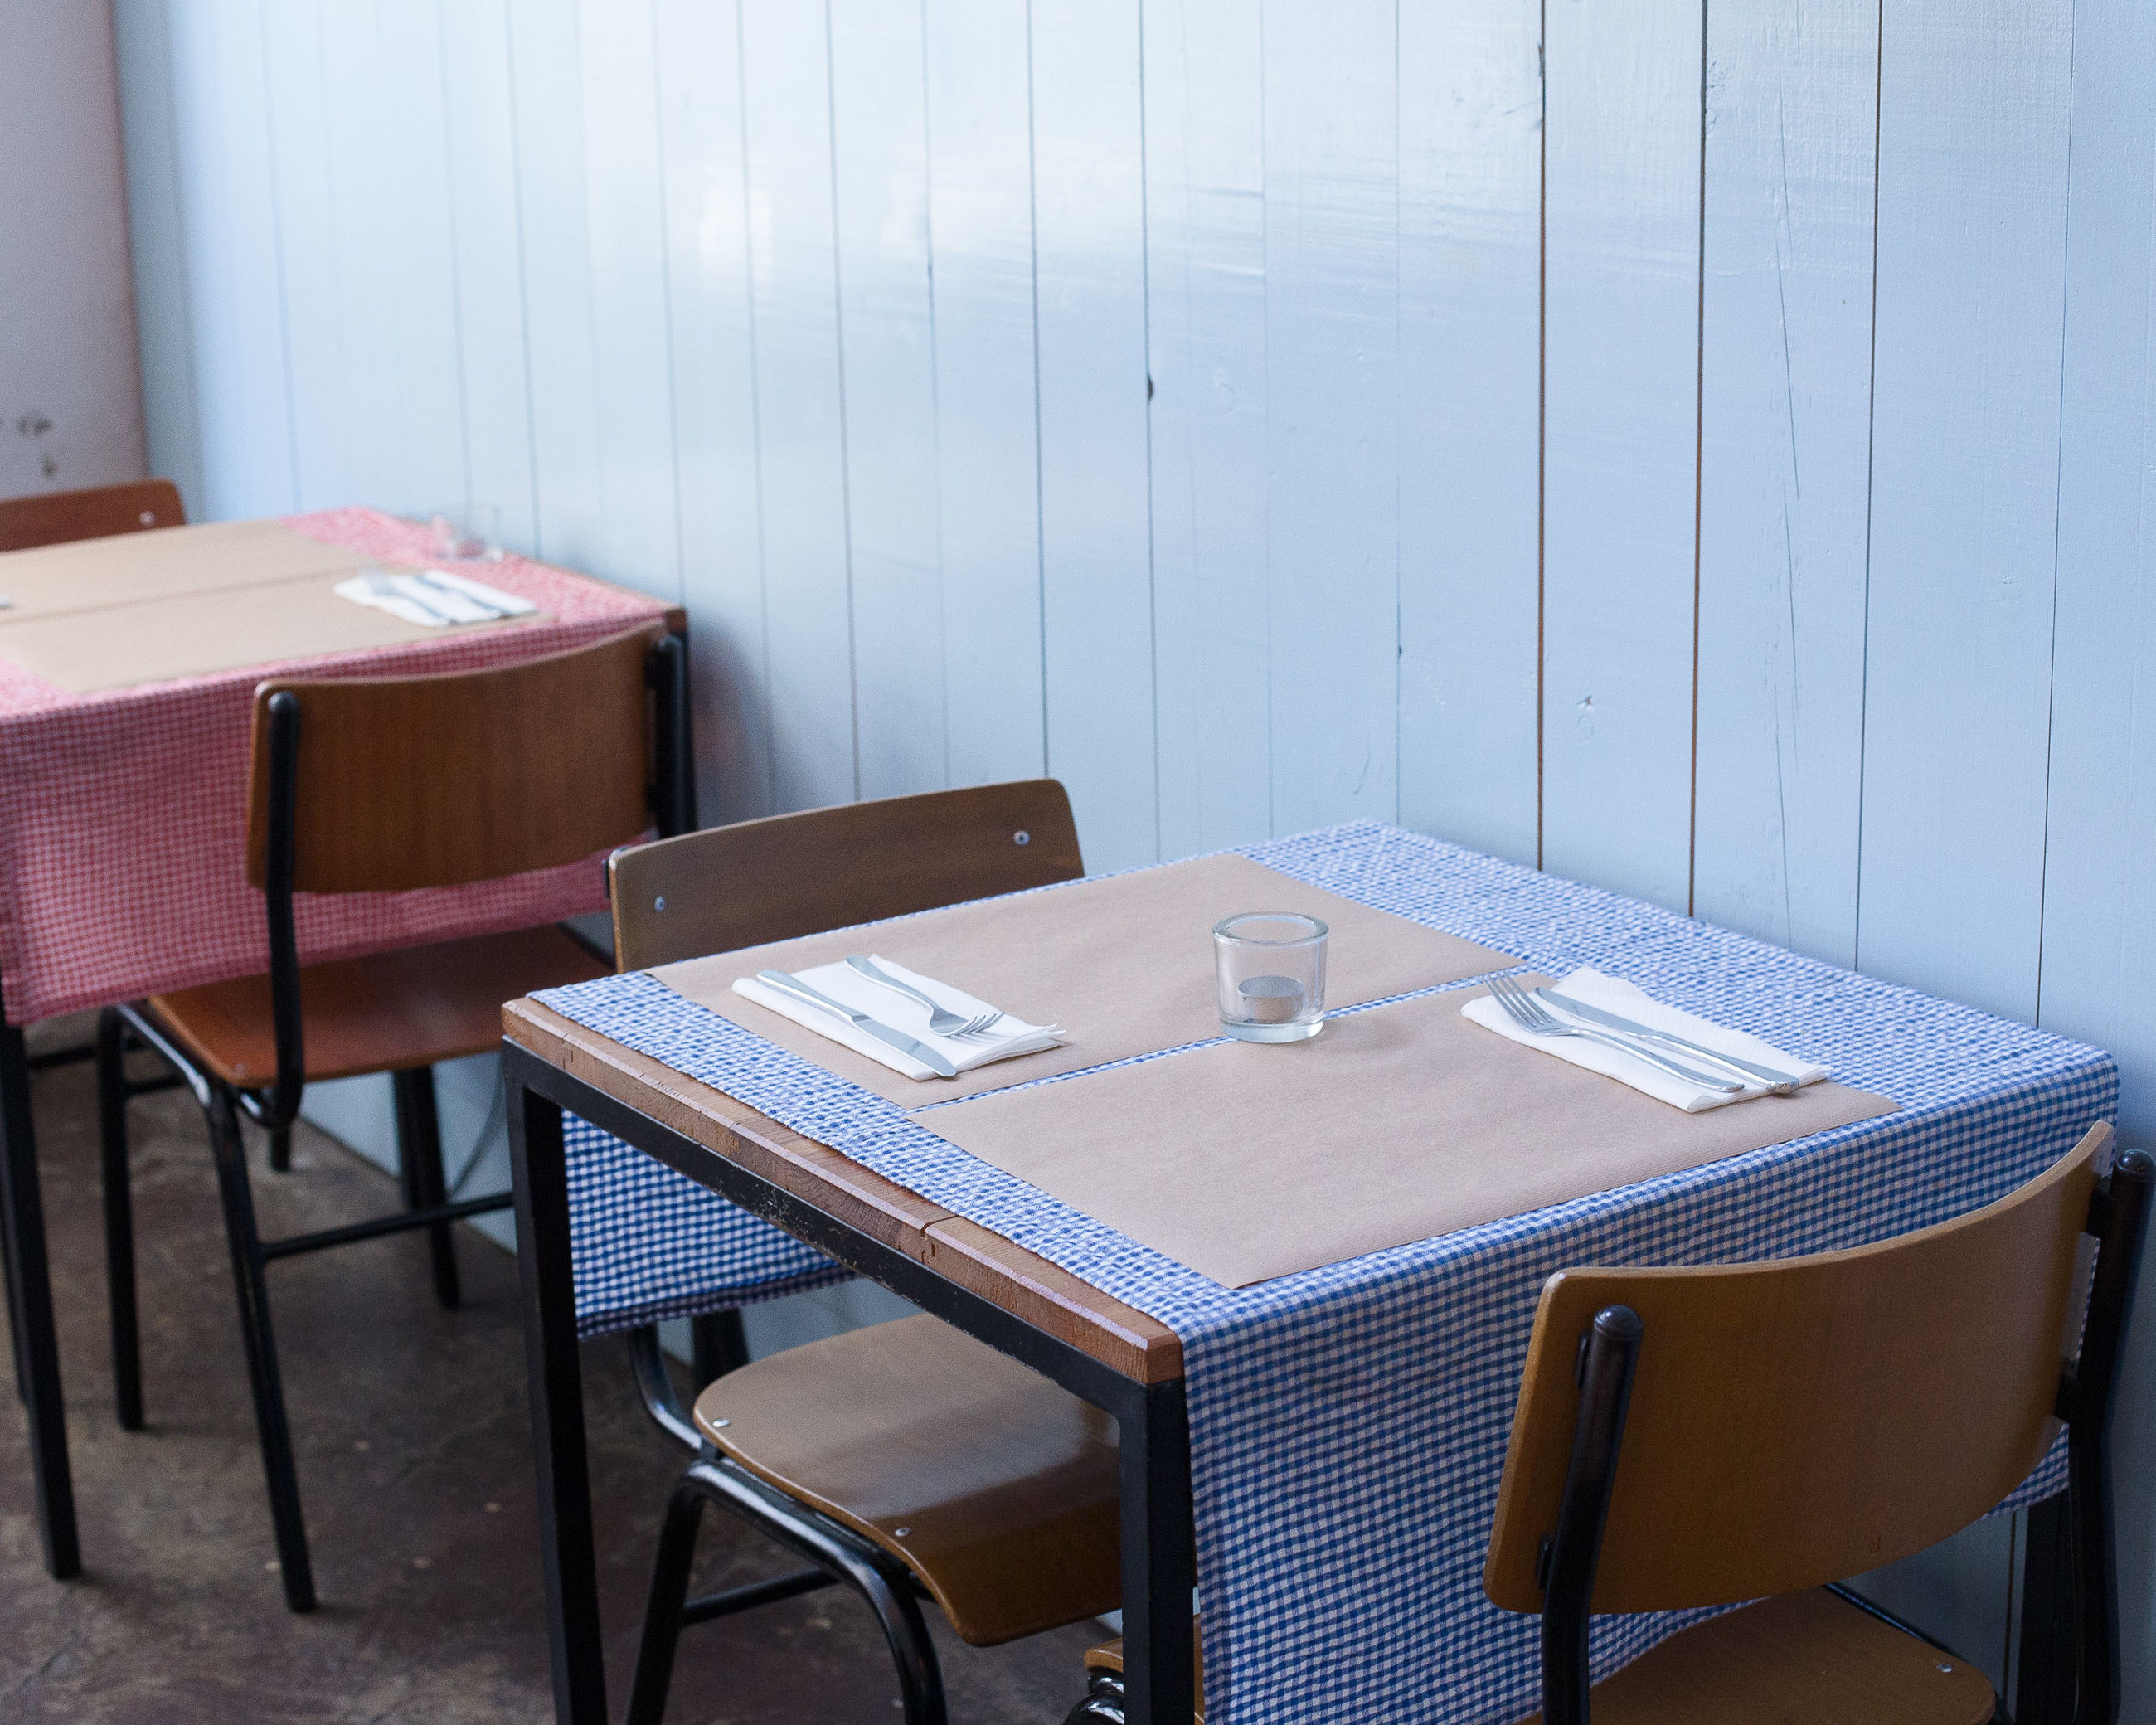 Tables and chairs arranged in cafe